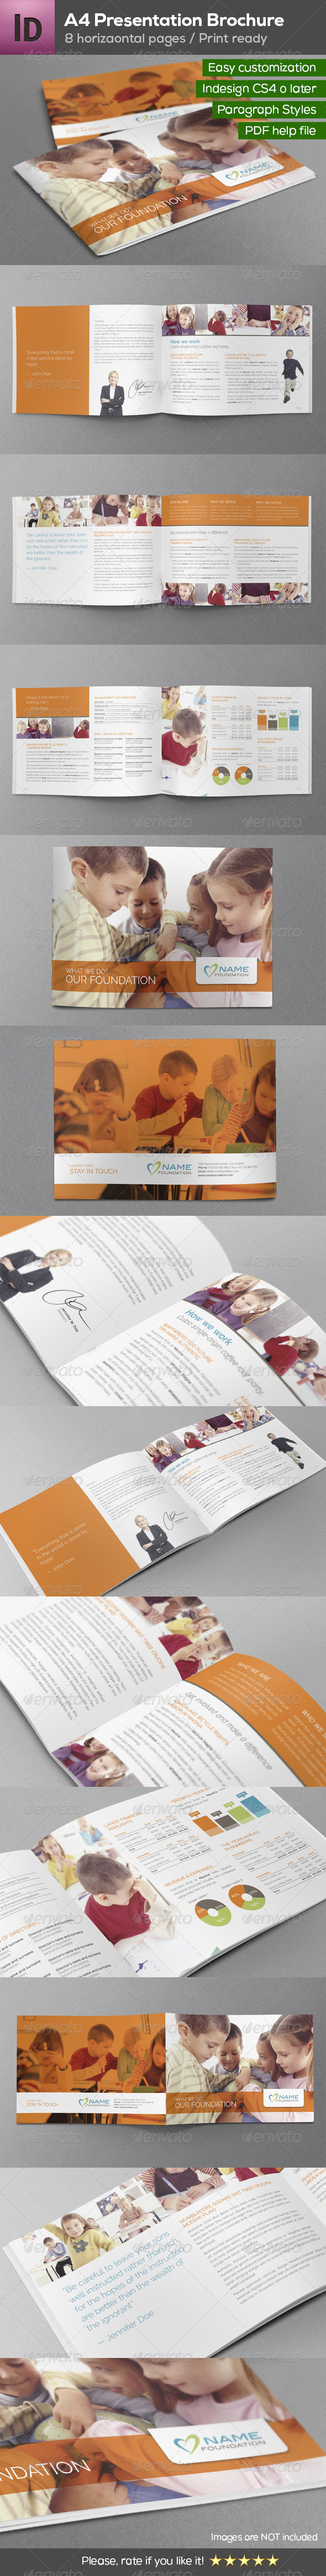 A4 Presentation Brochure 8 pages